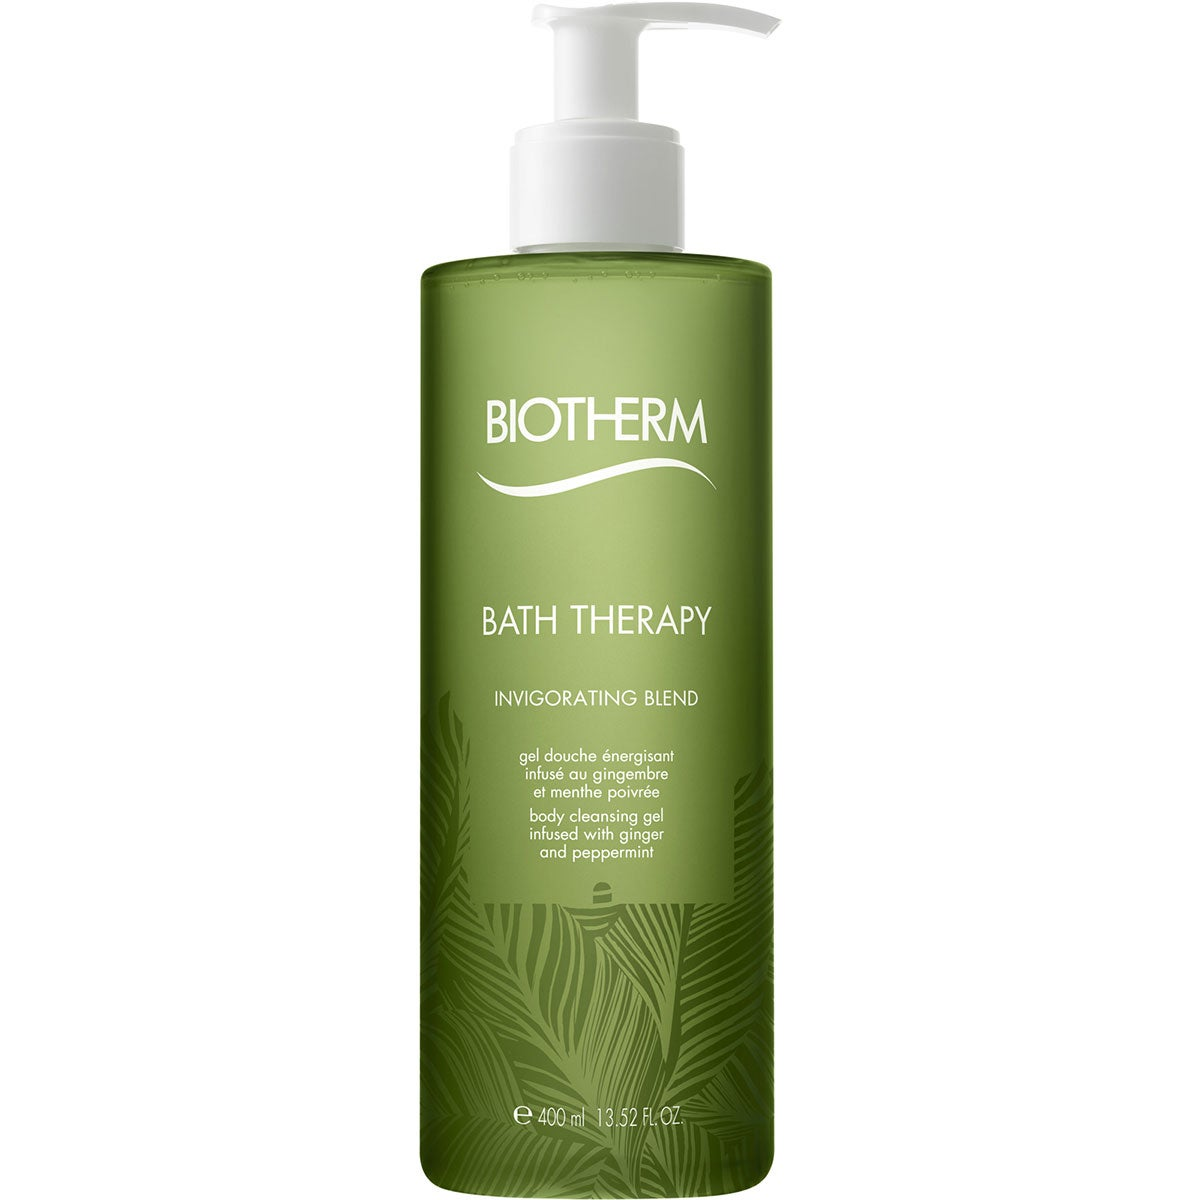 Biotherm Bath Therapy Invigorating Blend